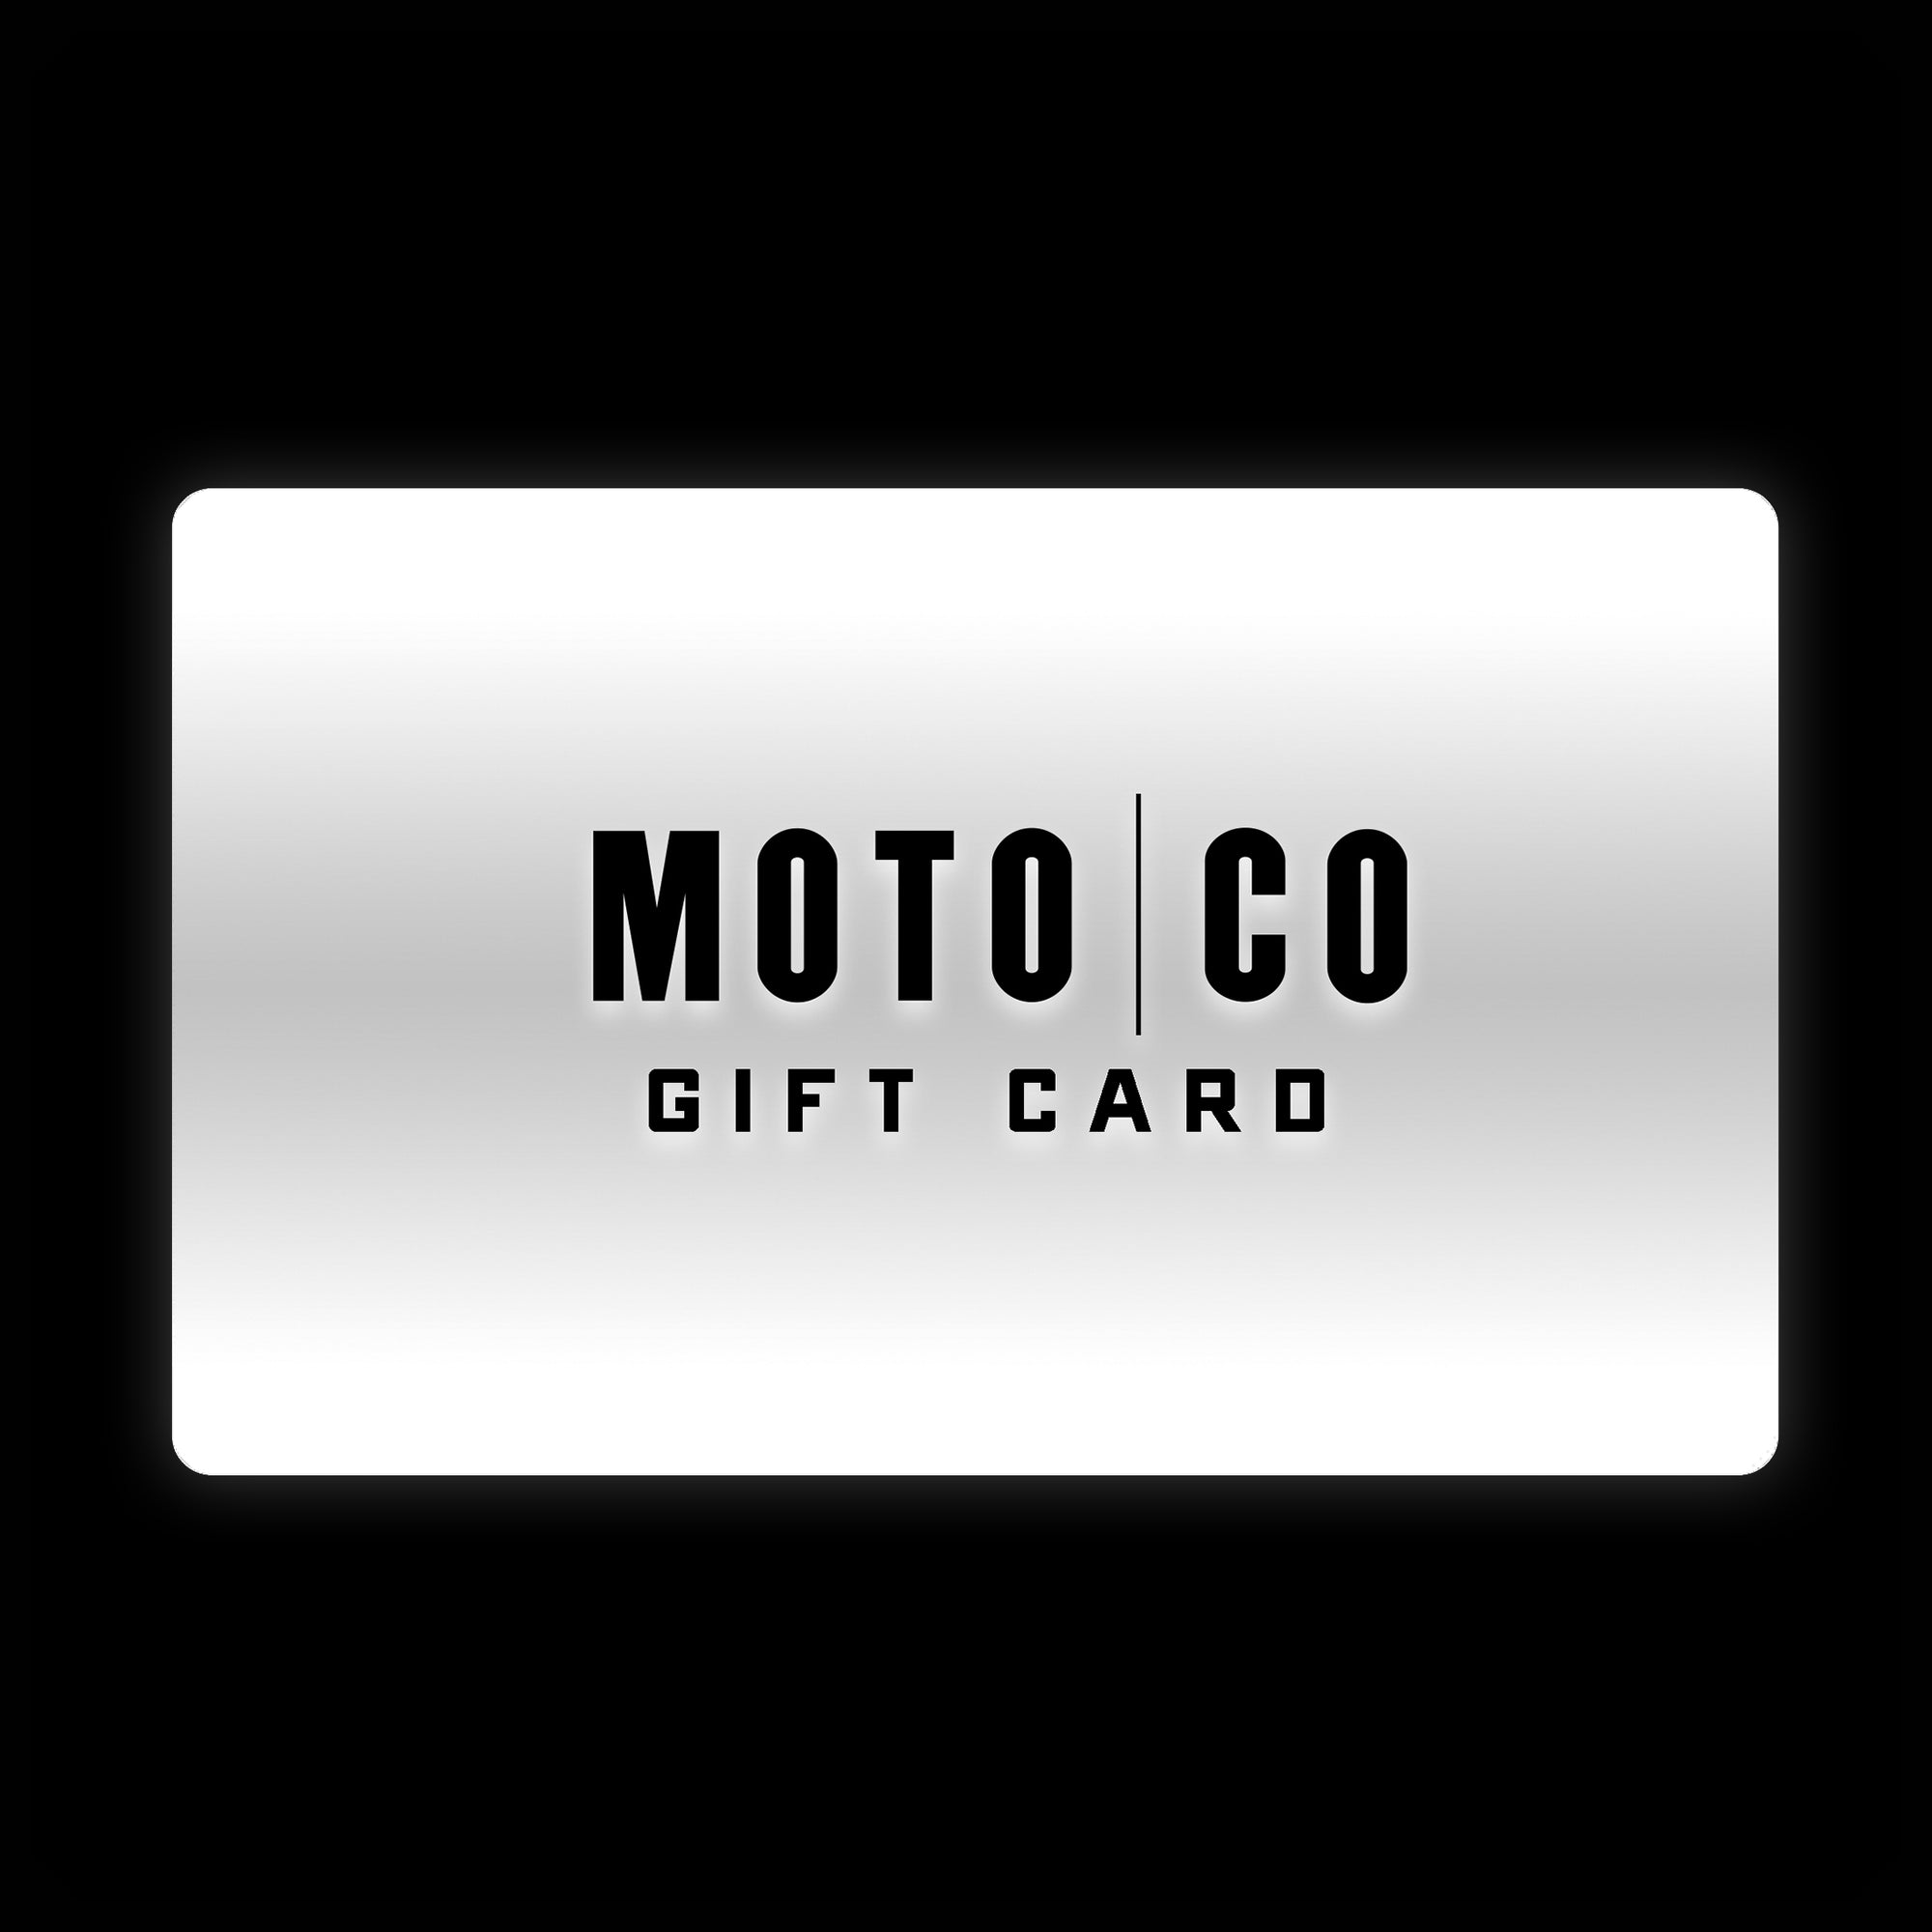 MOTO CO Gift Card